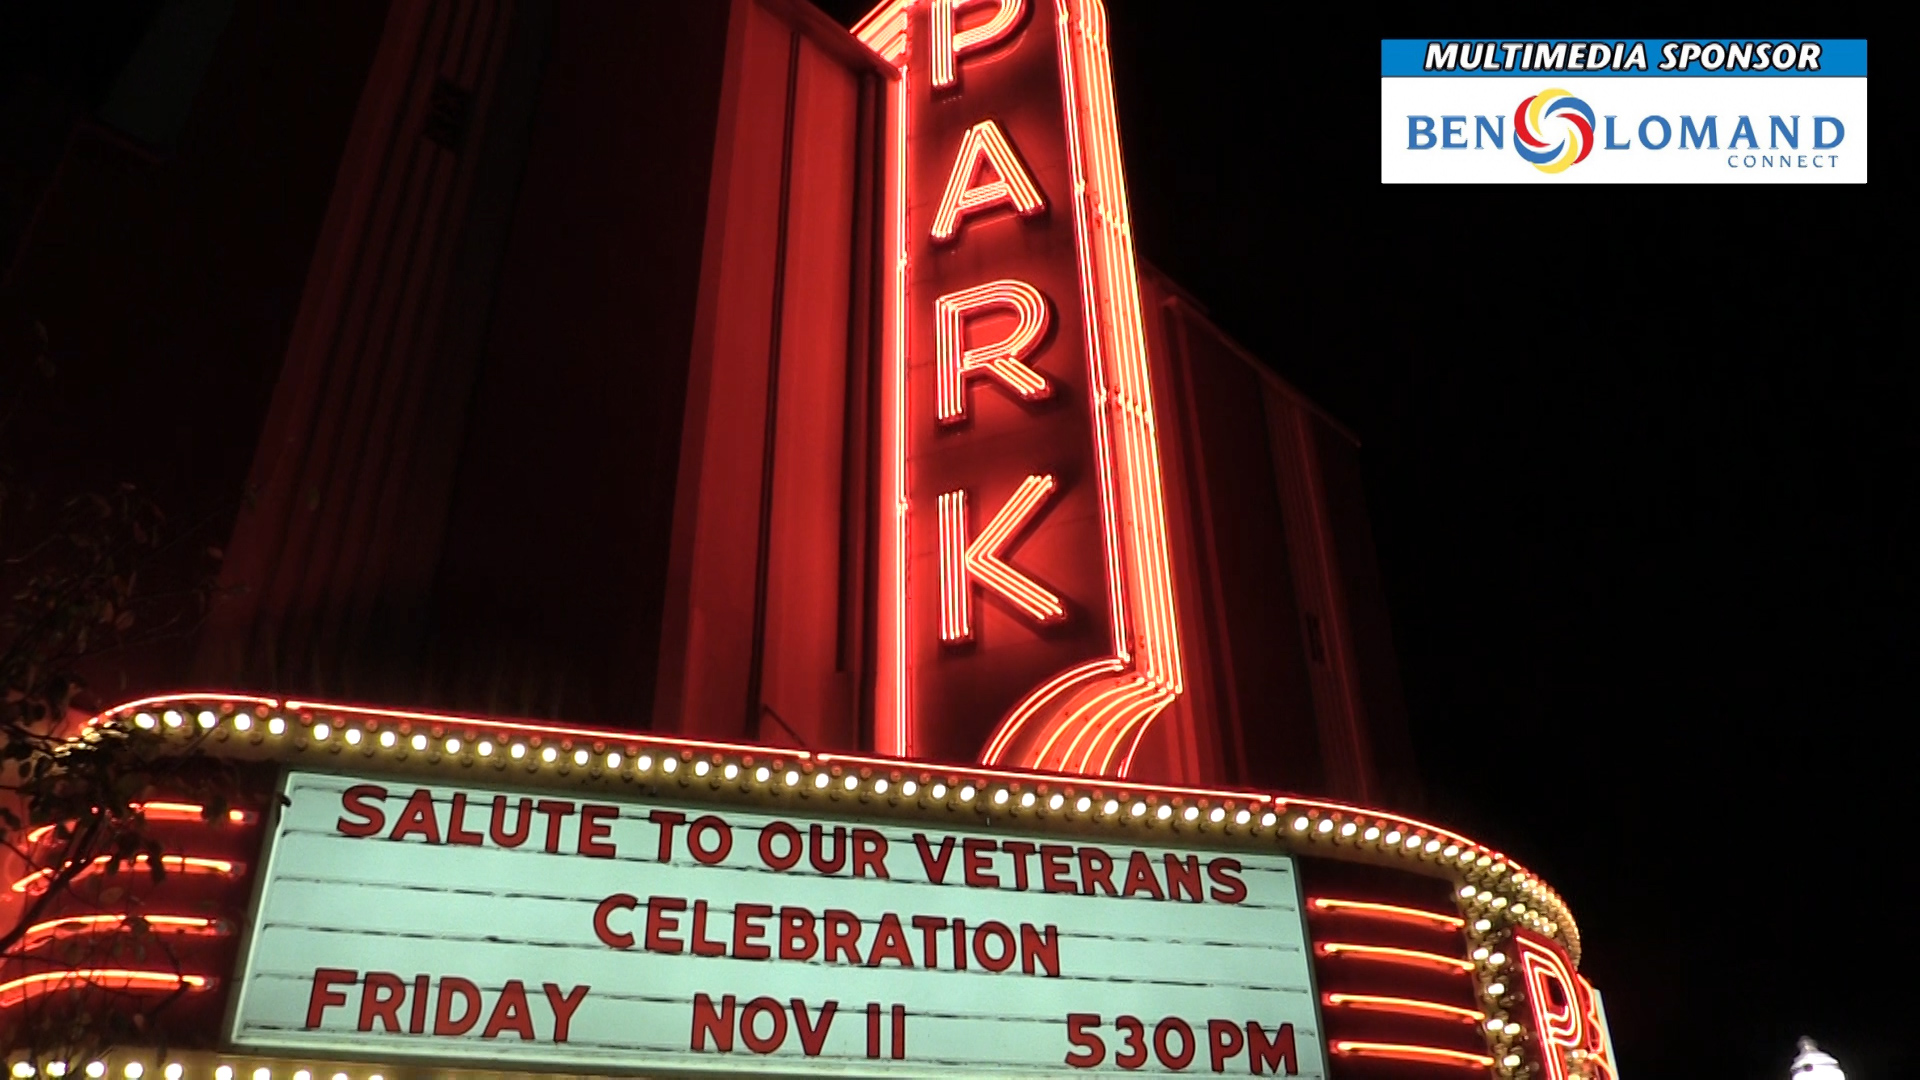 VIDEO: Salute to Our Veterans